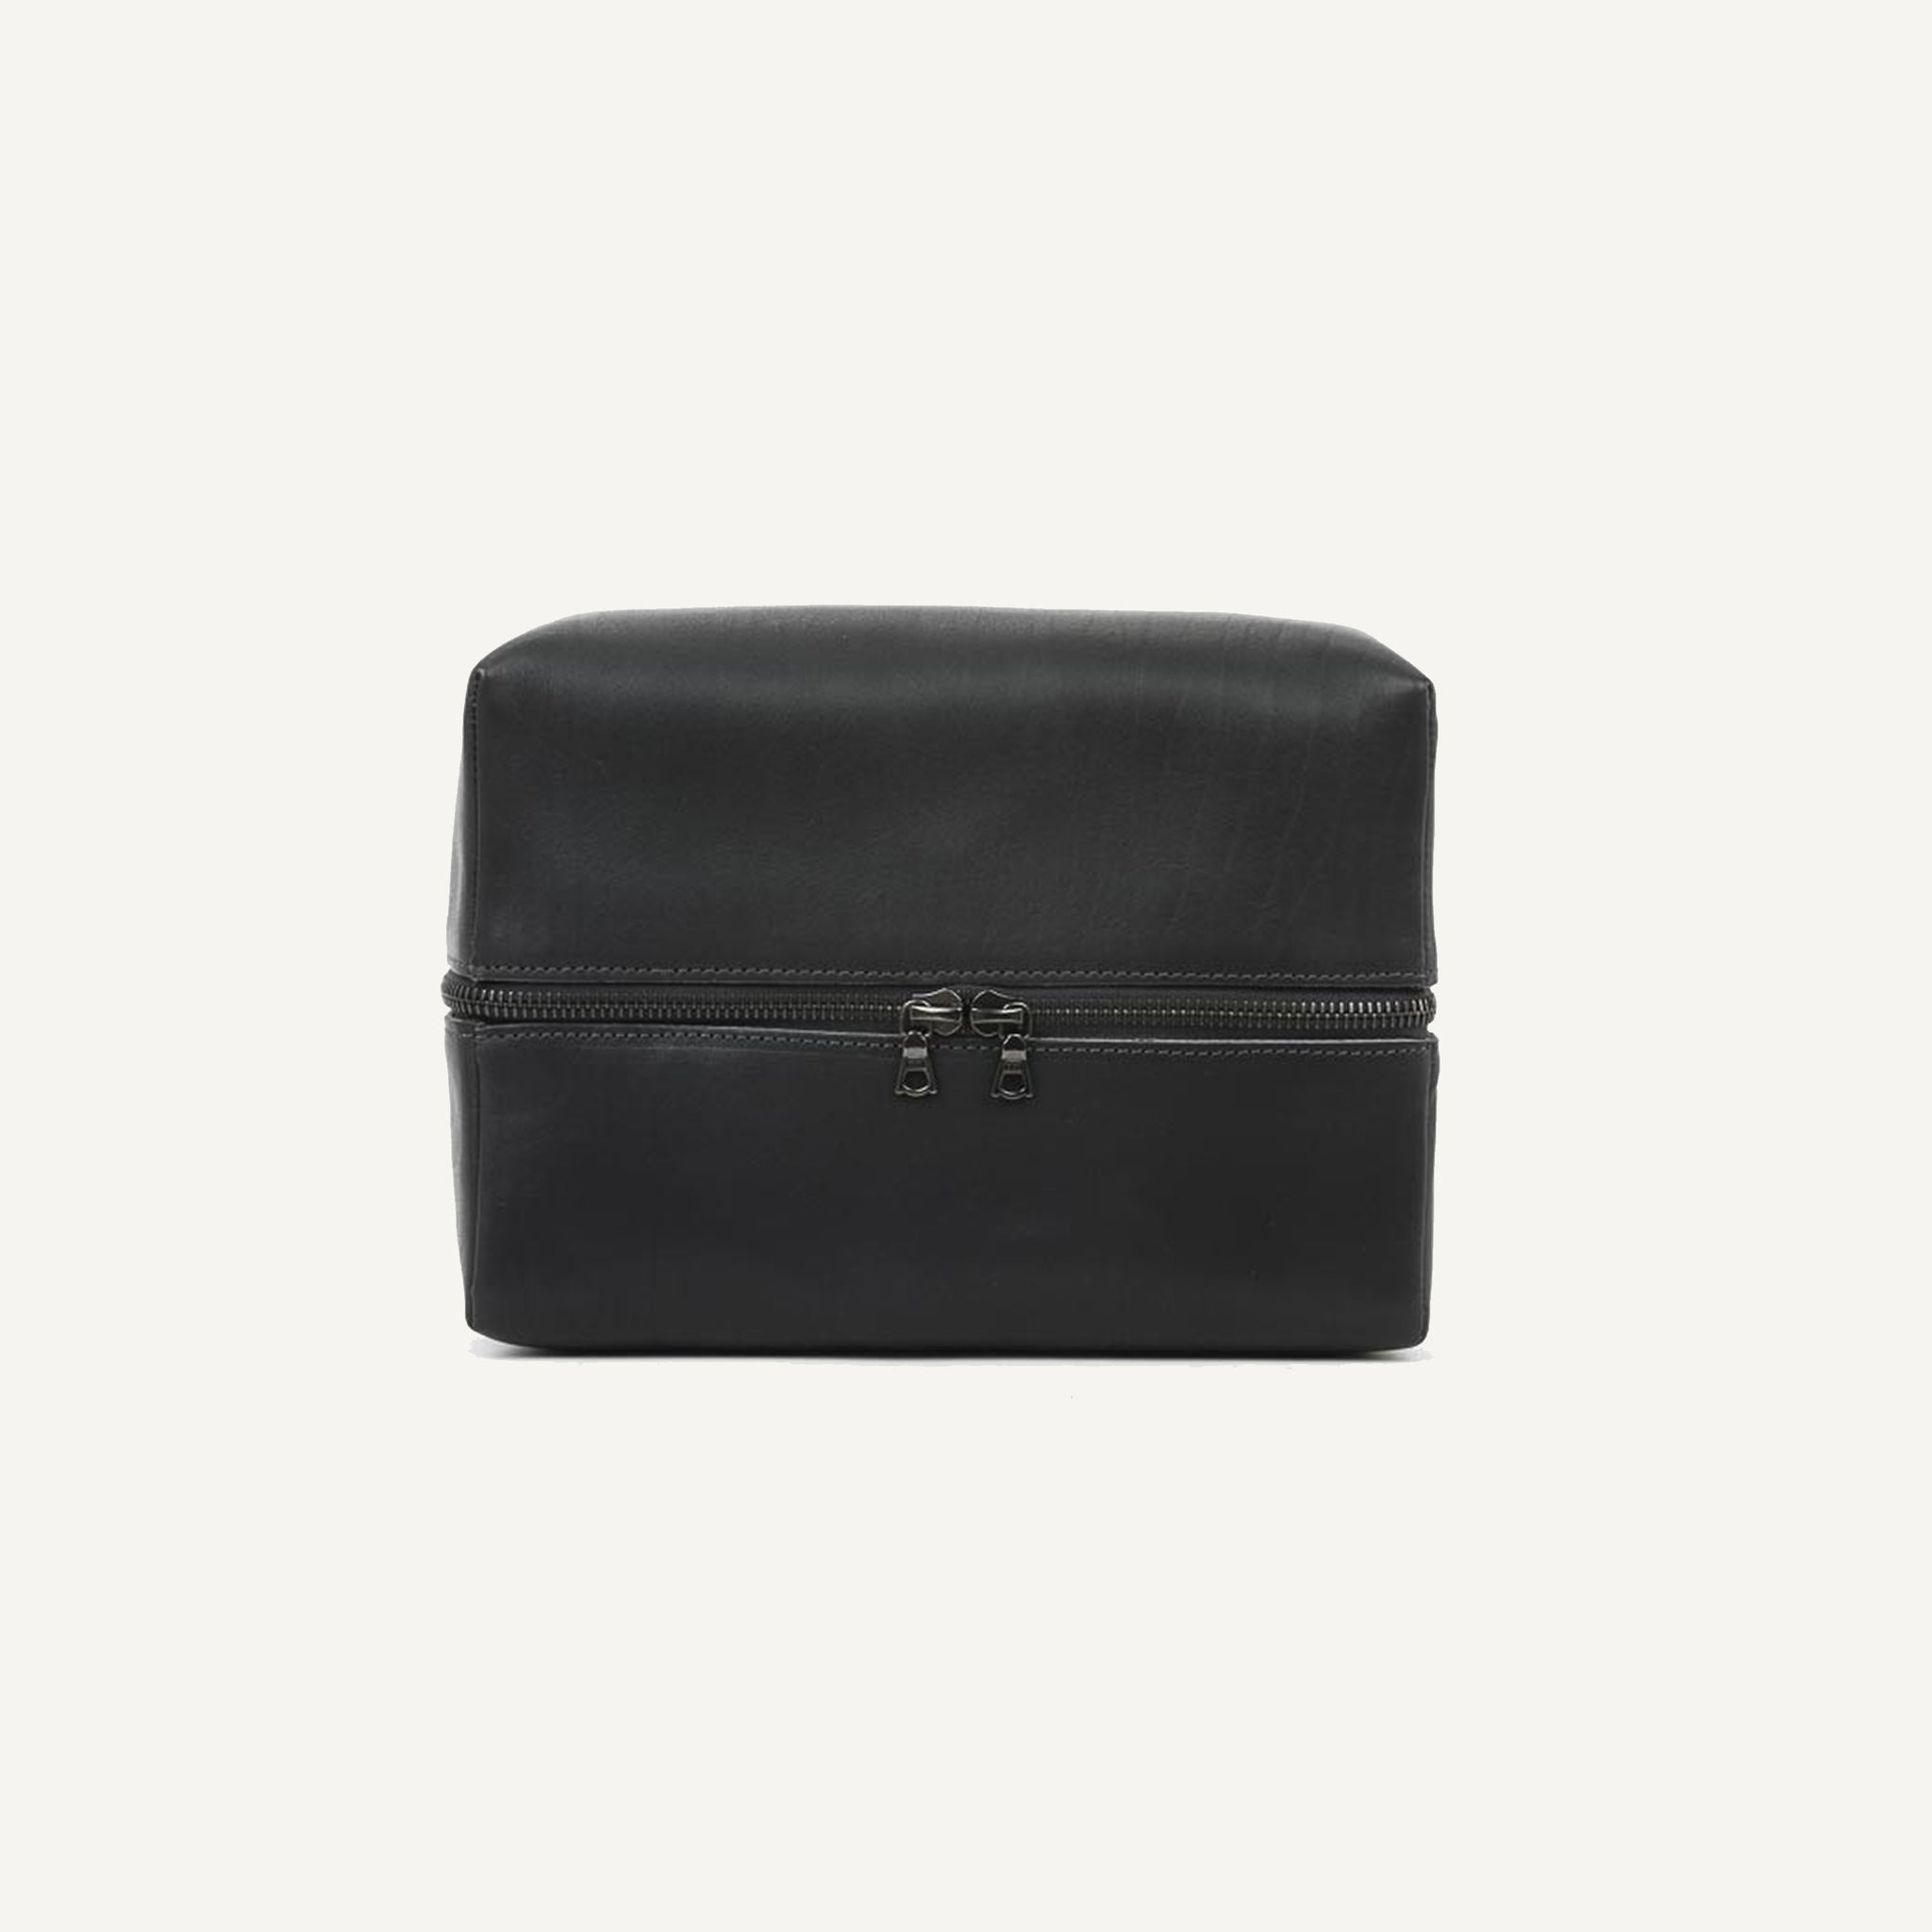 ISAAC REINA LARGE ZIPPED CASE